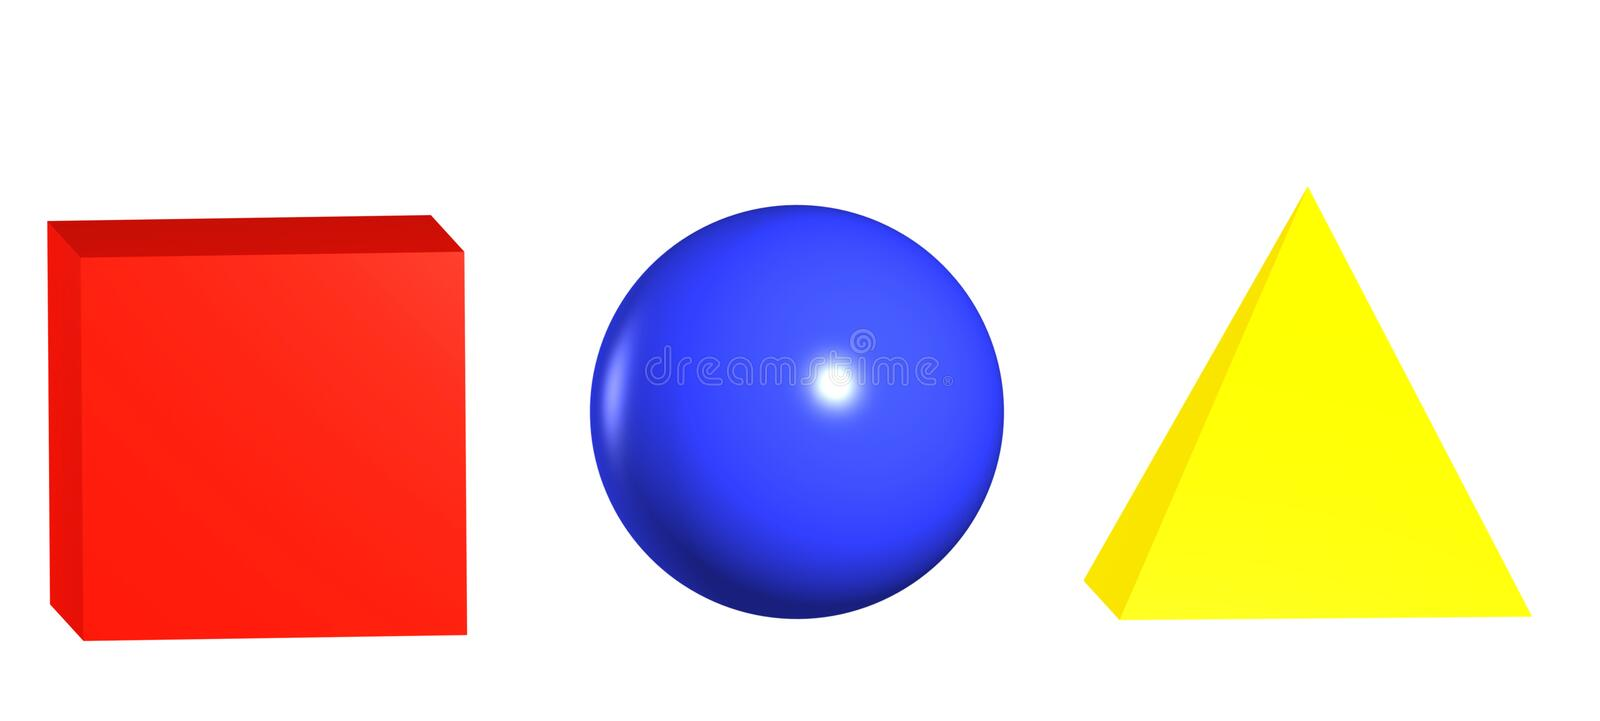 Primary Colours and Shapes